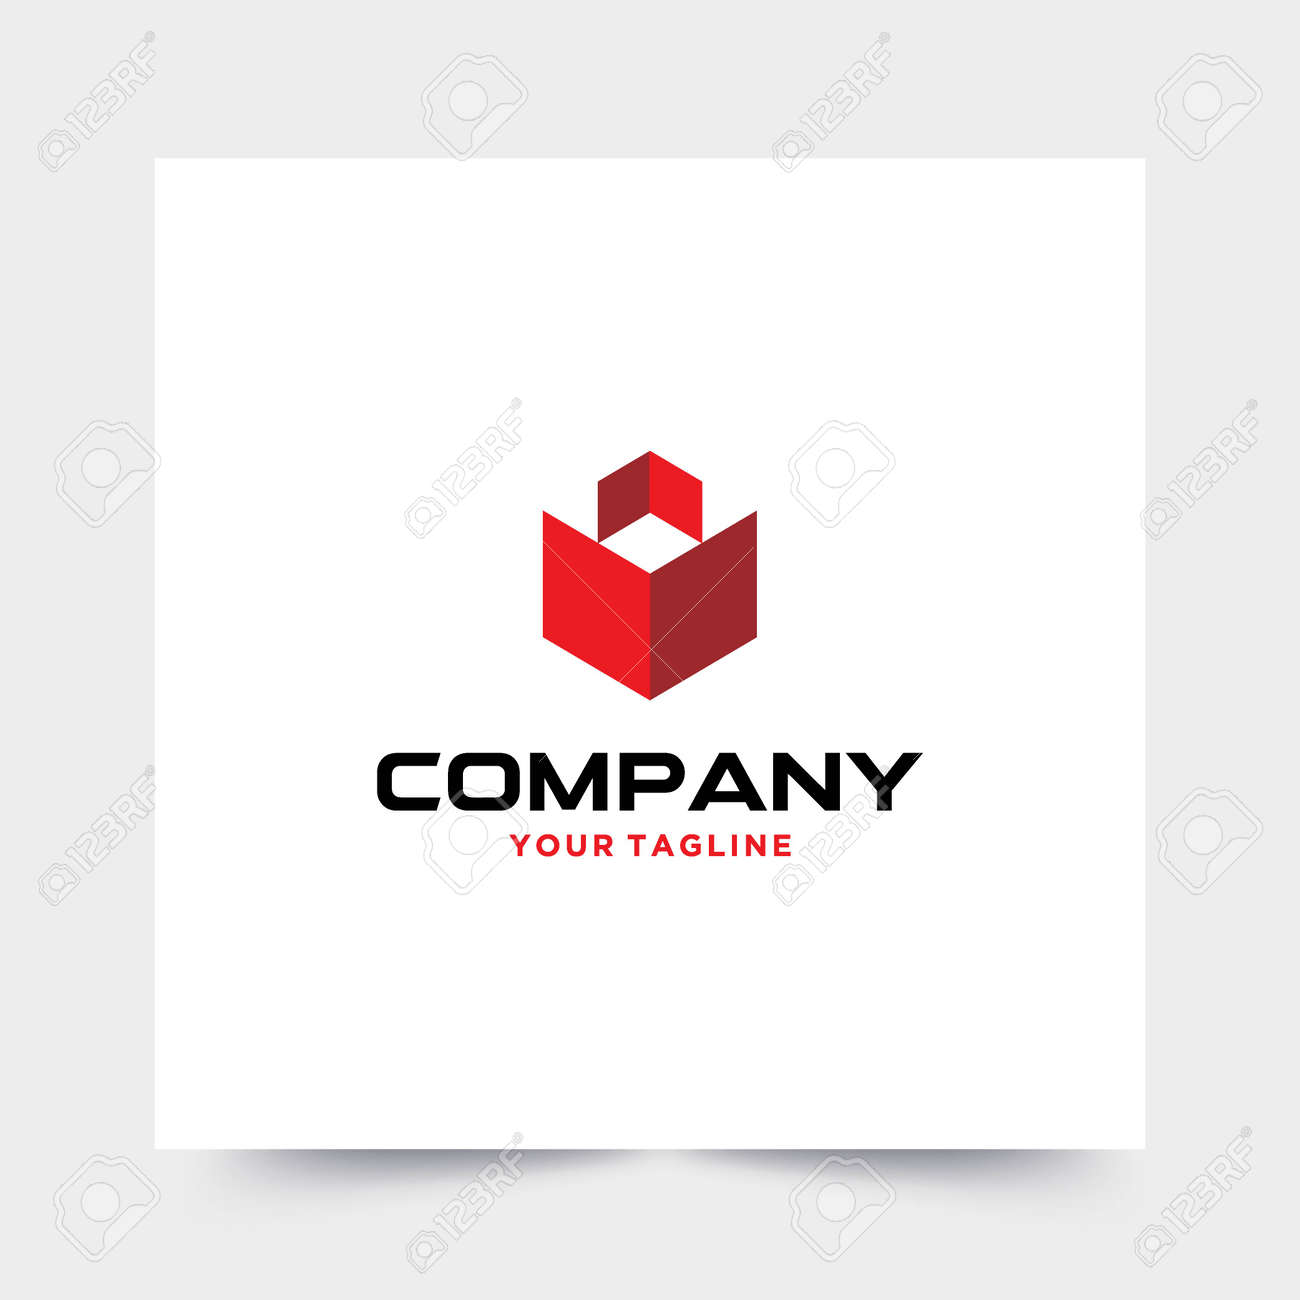 Modern and strong logo for construction companies - 156112201